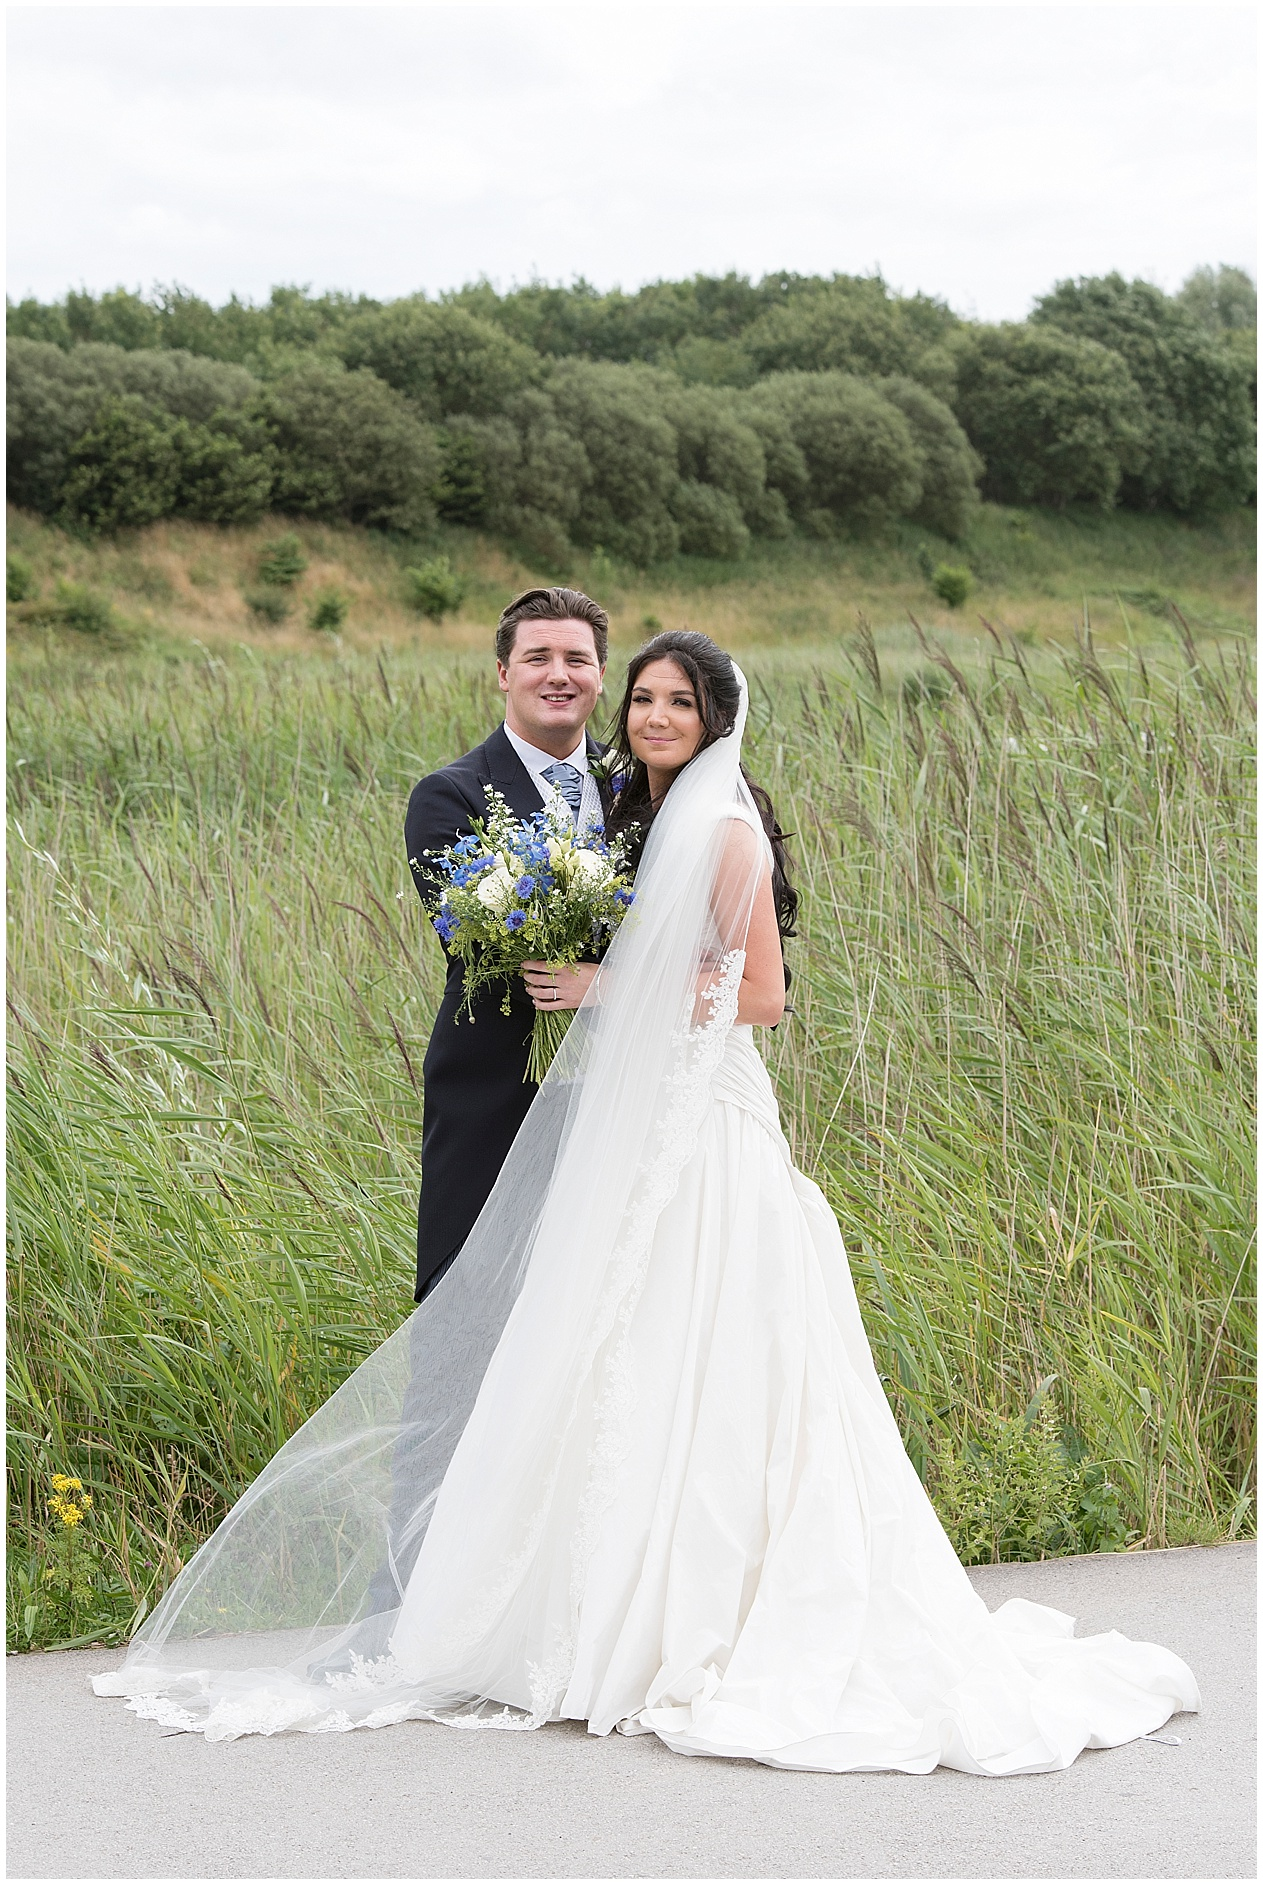 Lancashire wedding photographer. Bridal portrait of a bride and groom on their wedding day in Preston.